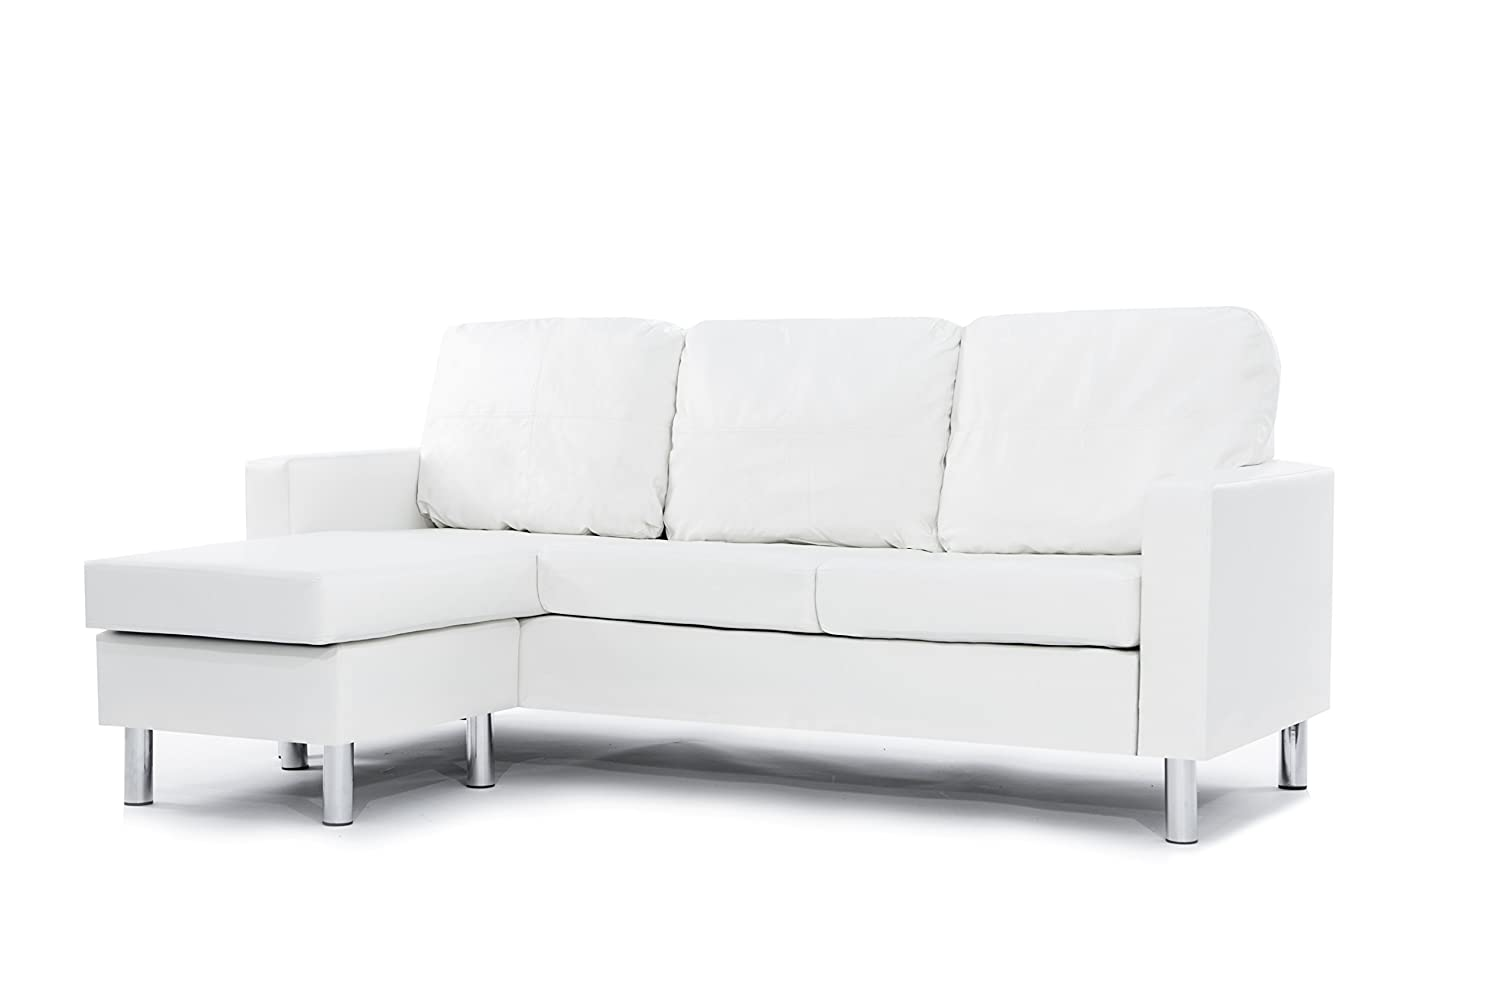 Amazon.com Modern Bonded Leather Sectional Sofa - Small Space Configurable Couch - White Kitchen u0026 Dining  sc 1 st  Amazon.com : black and white sectional - Sectionals, Sofas & Couches